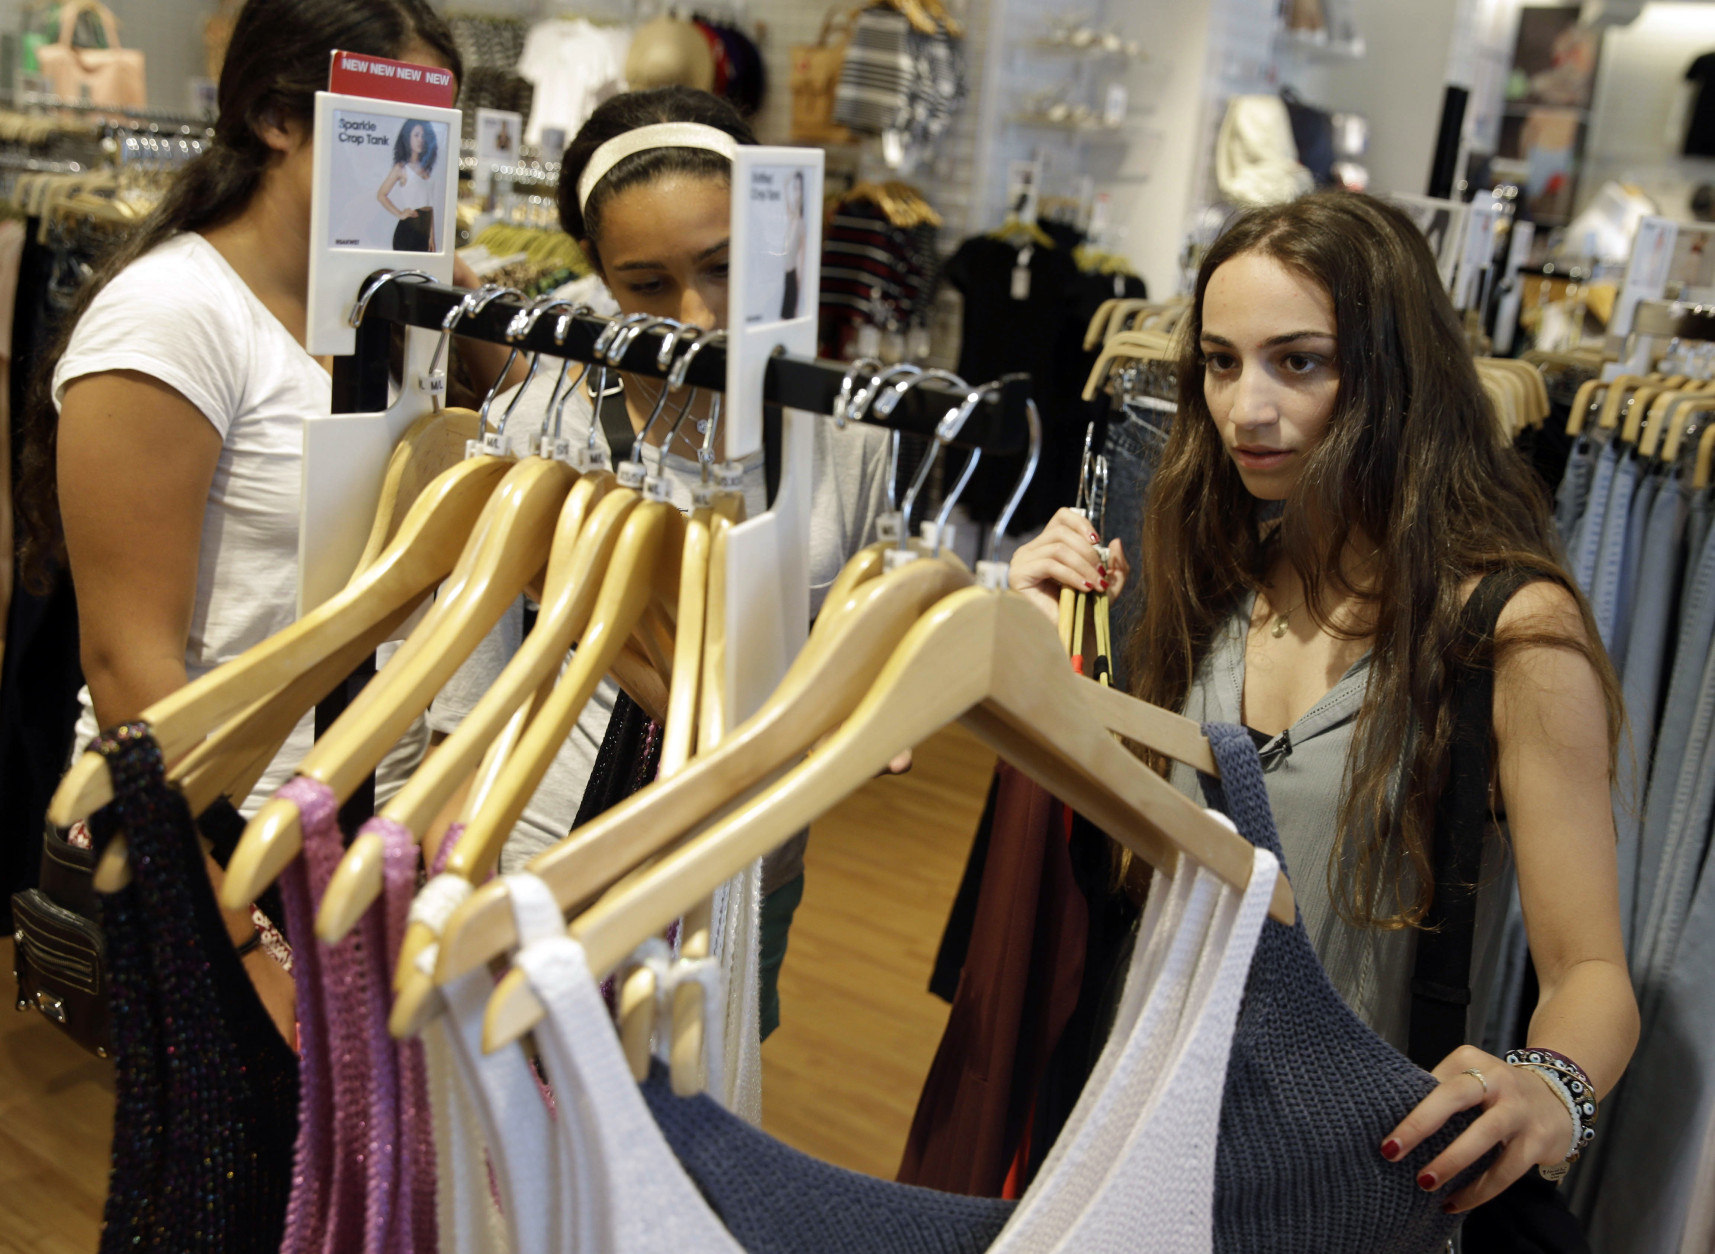 FILE - In this July 27, 2015, photo, Giulia Pugliese, 15, right, shops for clothes with friends at Roosevelt Field shopping mall in Garden City, N.Y. The Conference Board releases its October index on U.S. consumer confidence on Tuesday, Oct. 27, 2015. (AP Photo/Seth Wenig, File)